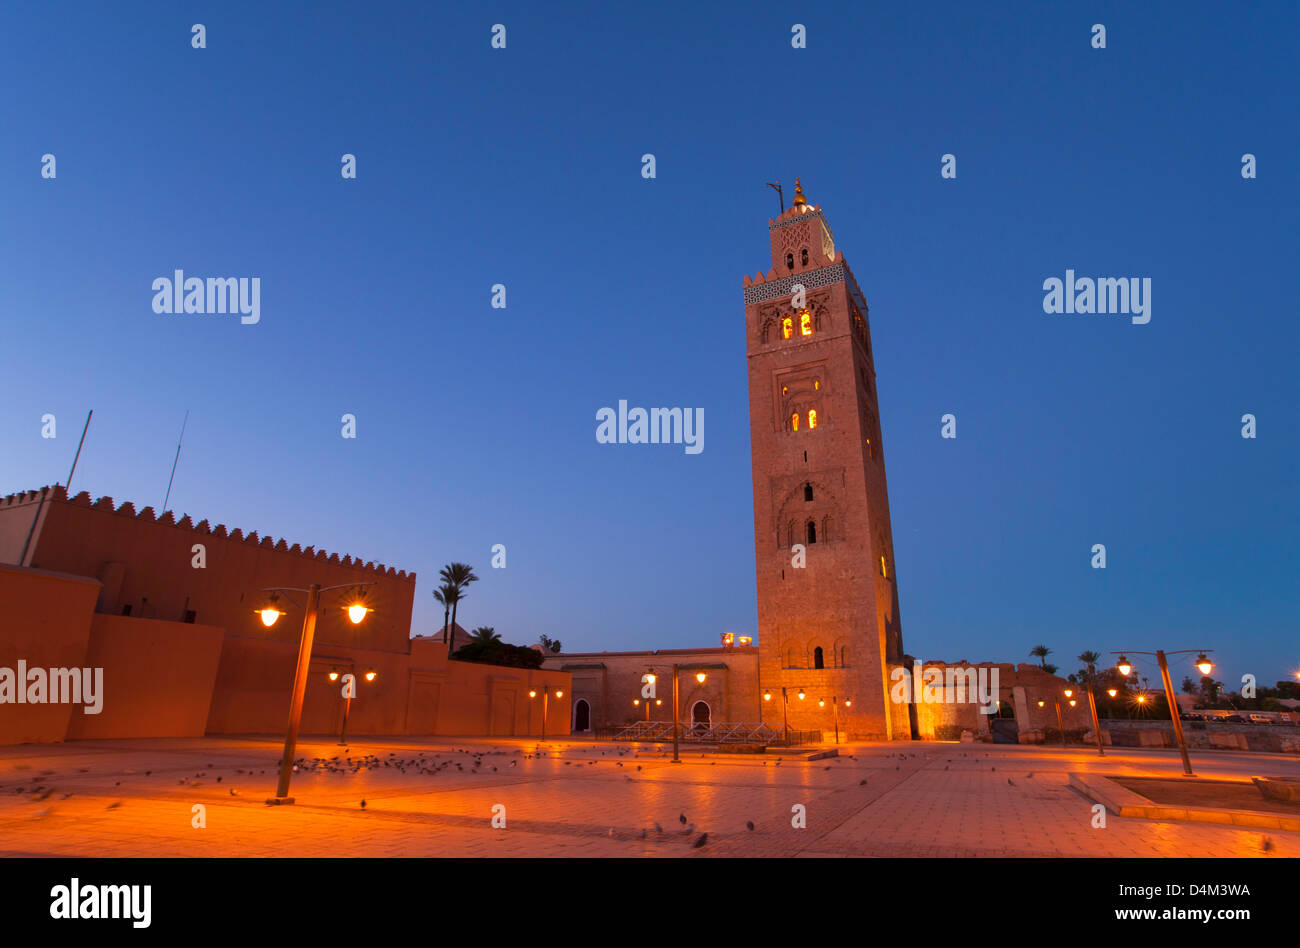 Tower overlooking courtyard at dusk - Stock Image